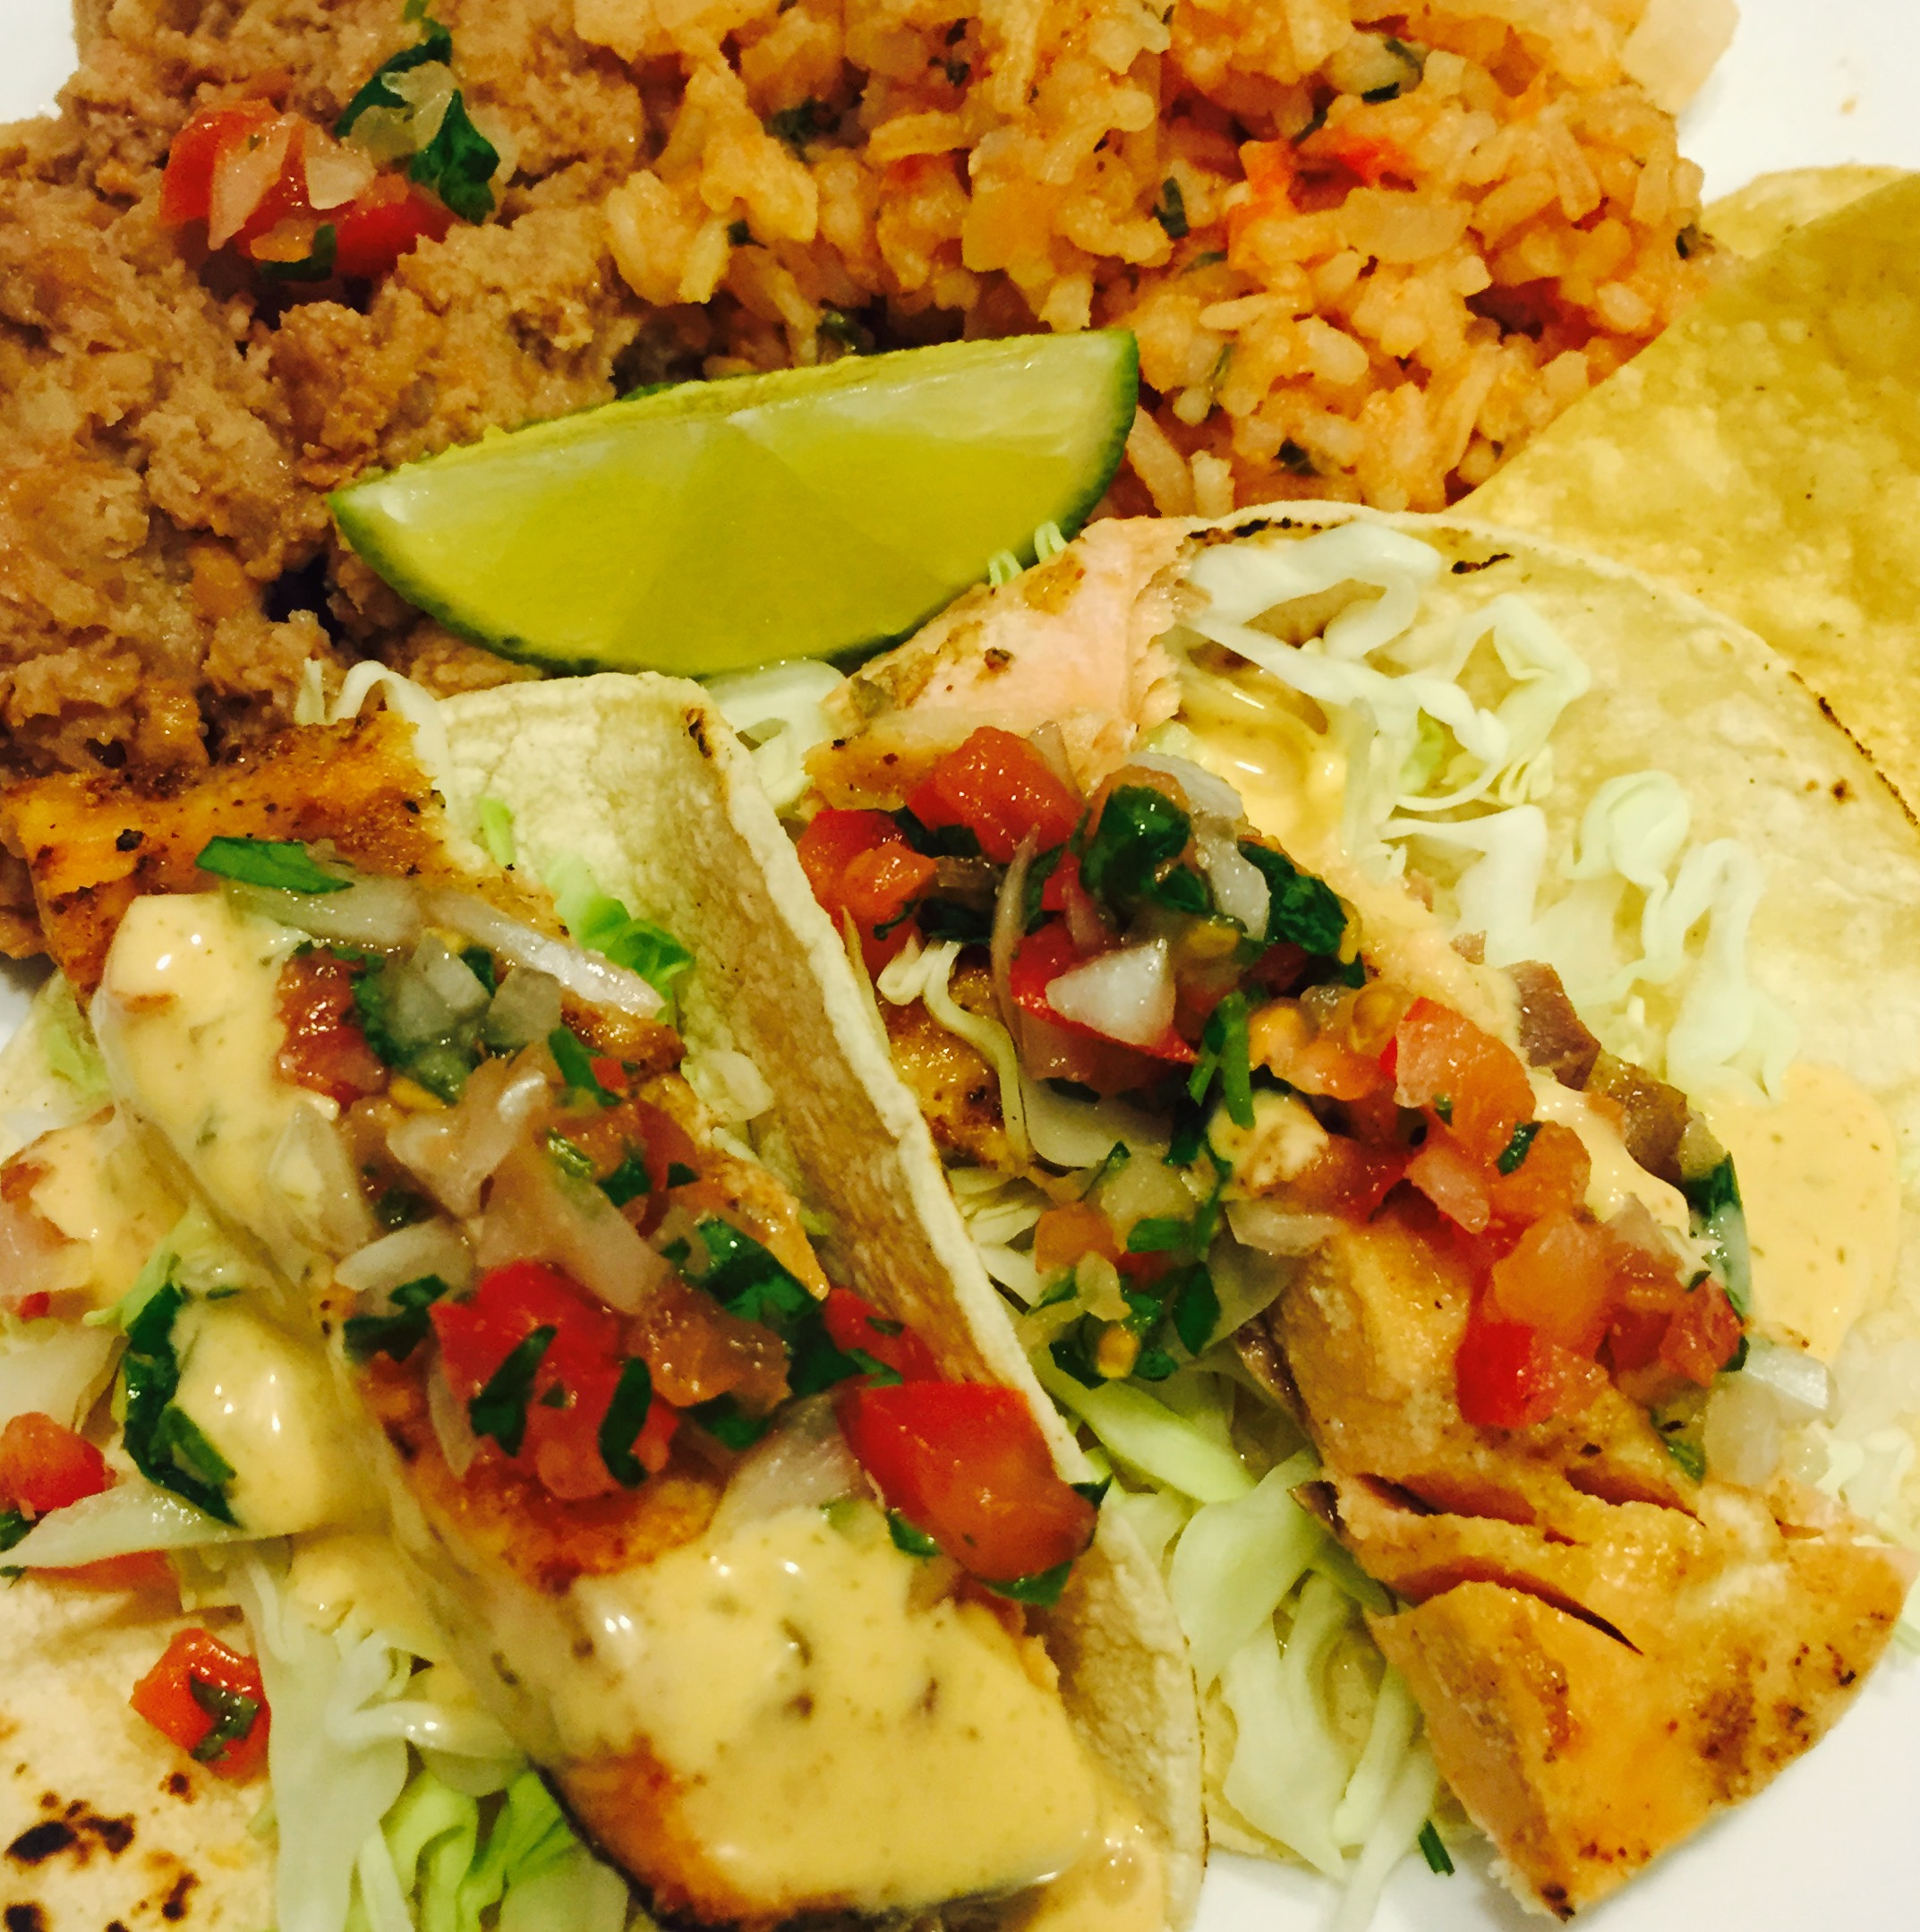 Broiled Fish Tacos With Chipotle Slaw